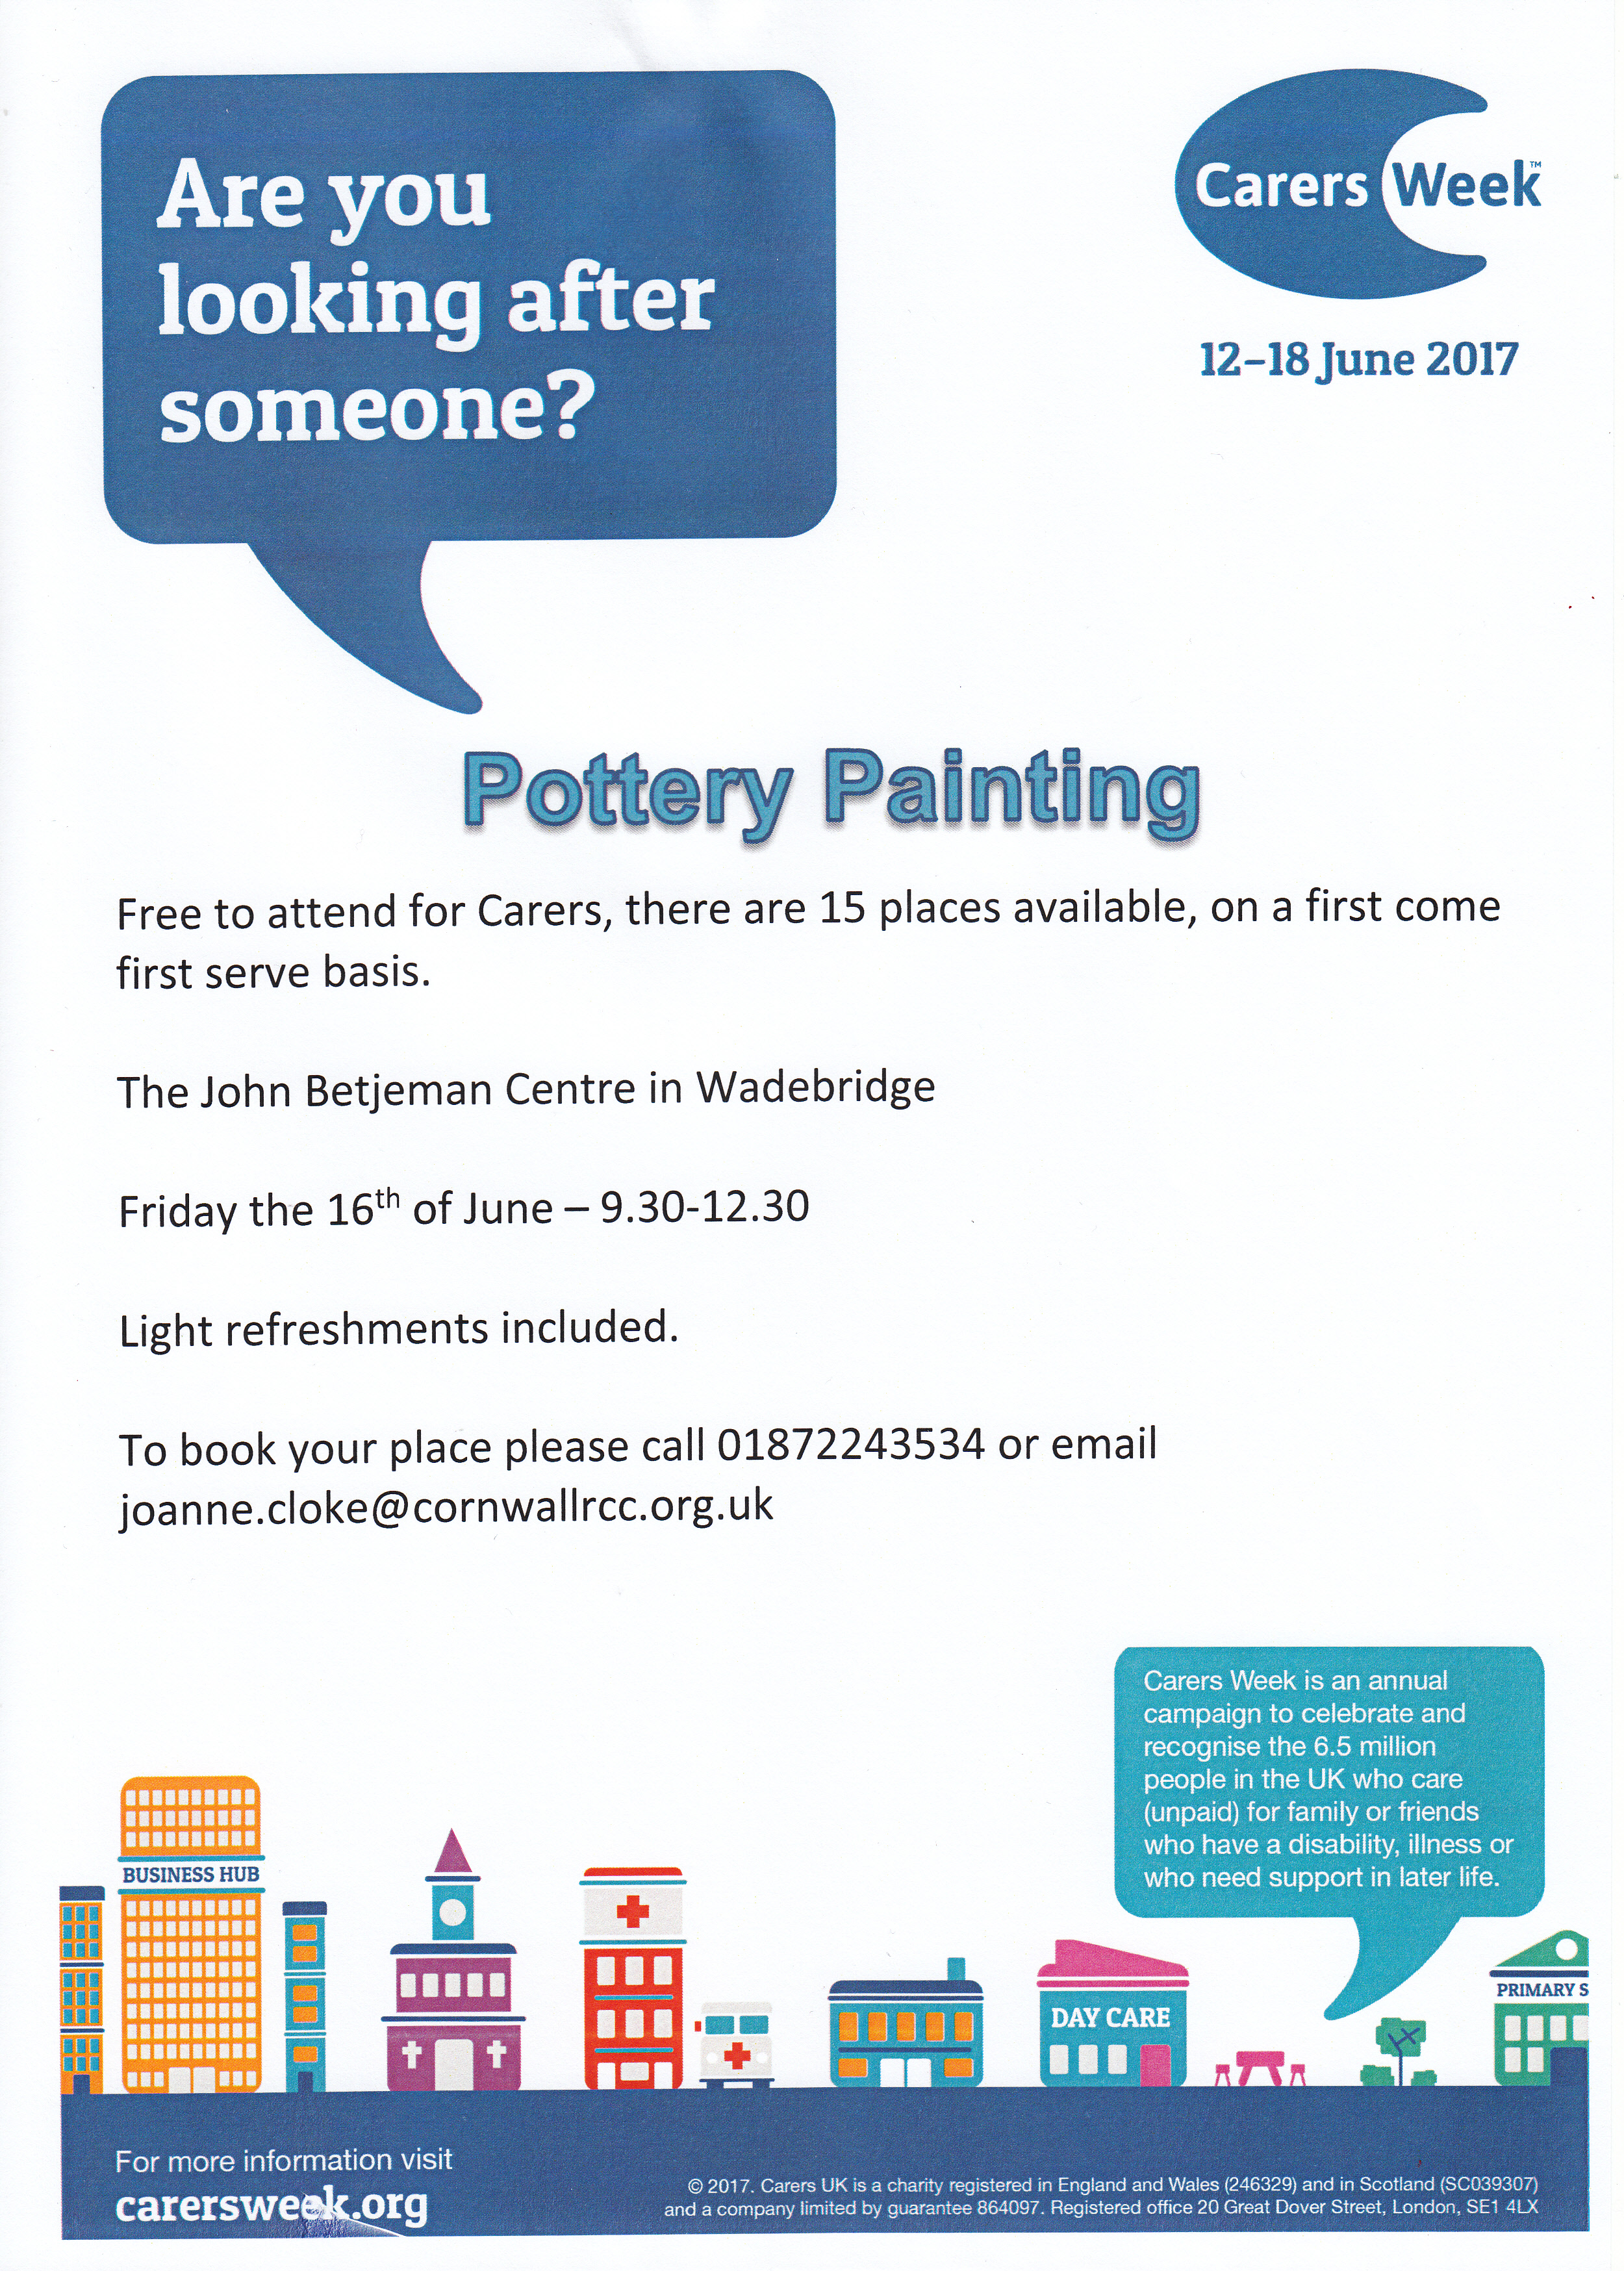 Carers Week Pottery